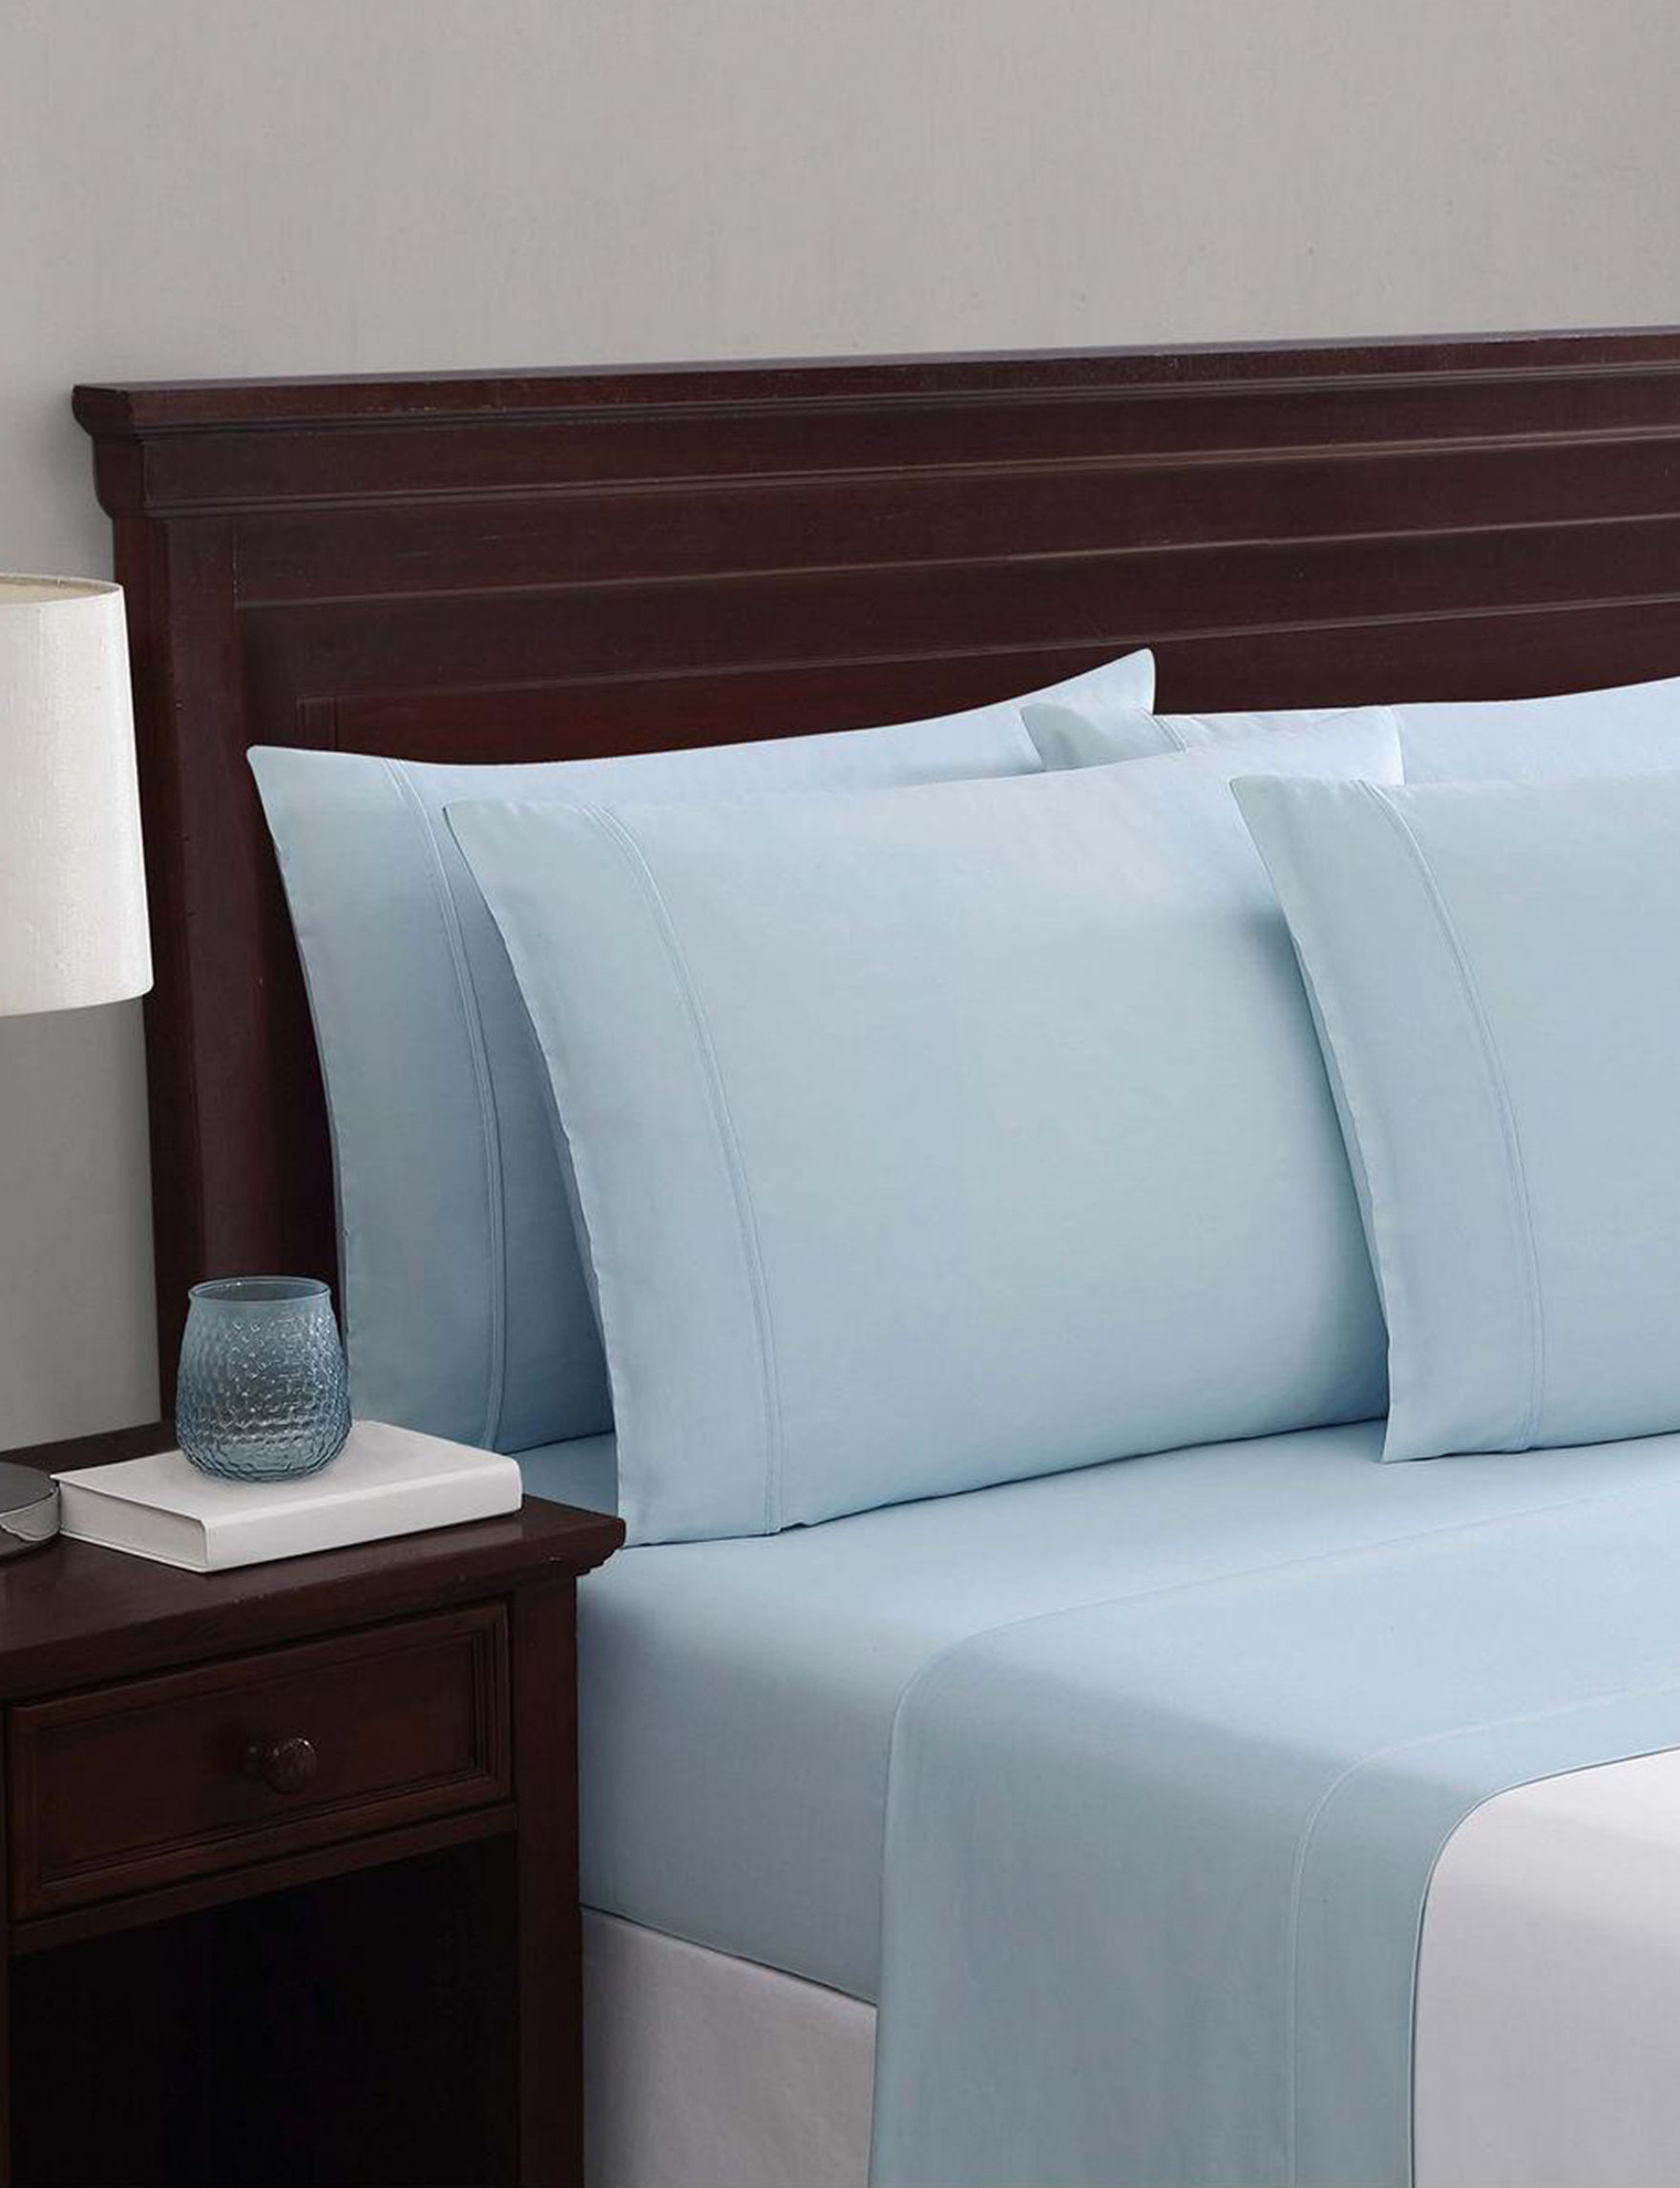 Truly Soft Light Blue Sheets & Pillowcases